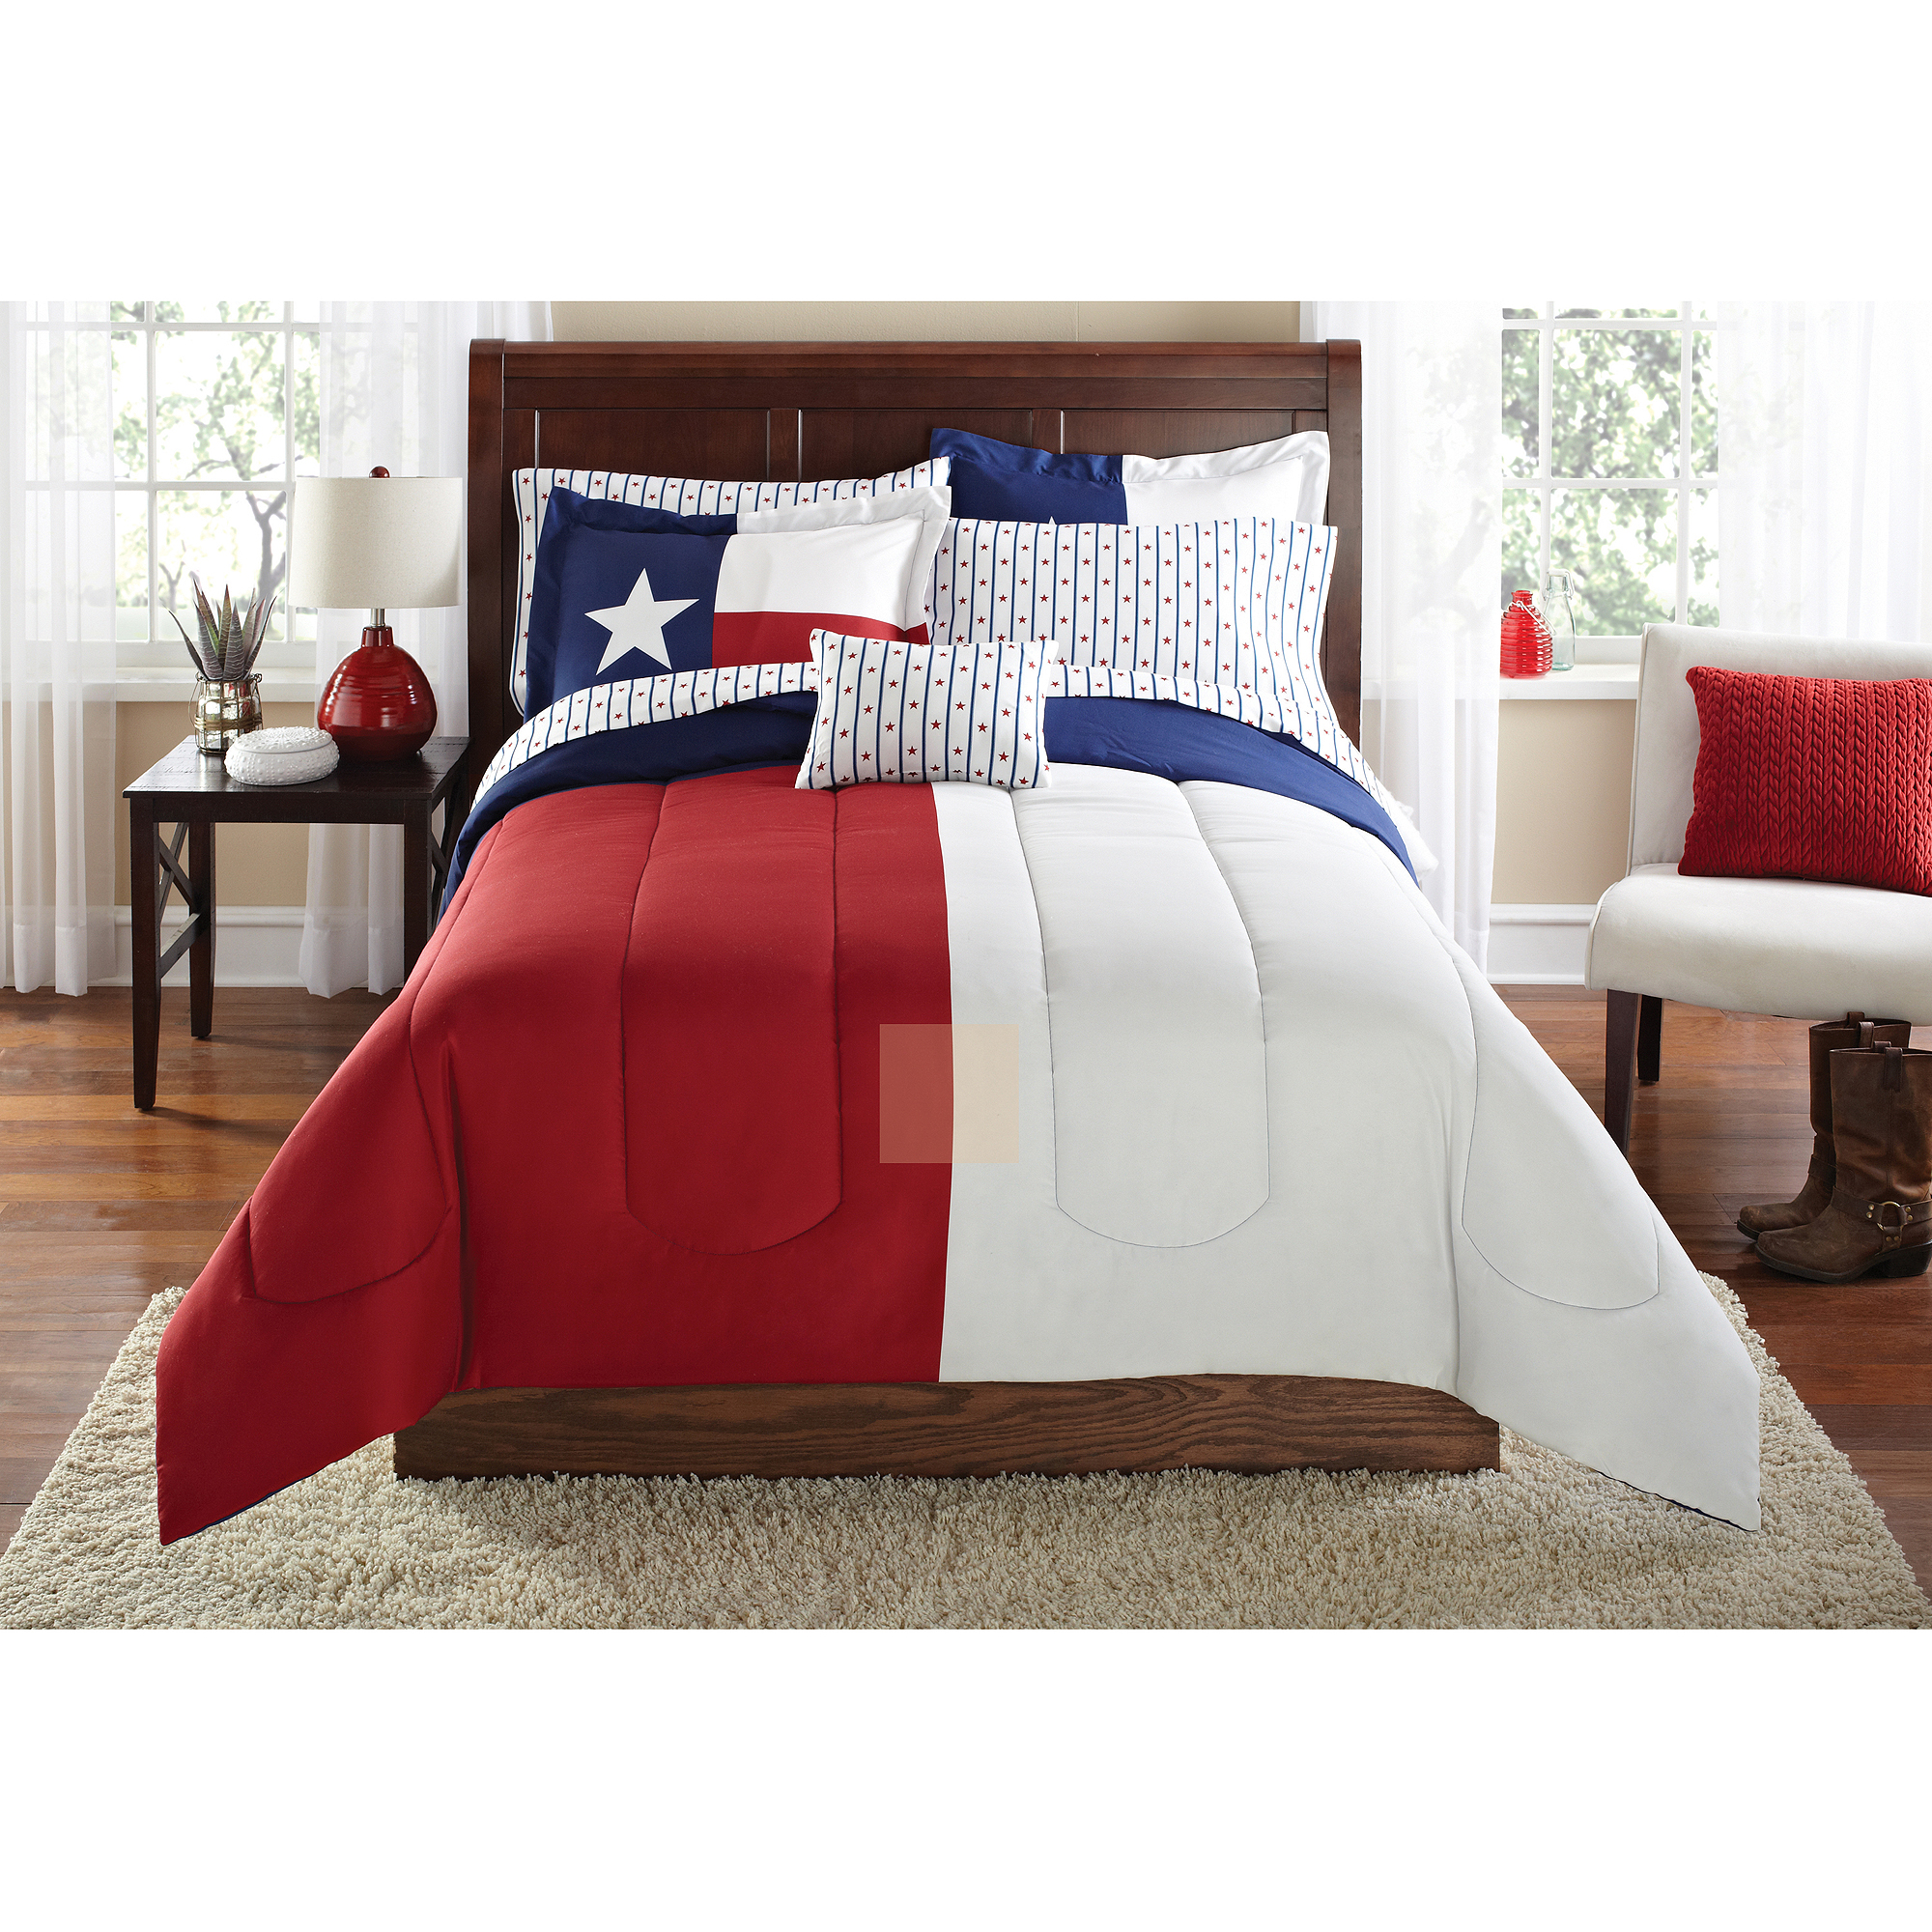 Mainstays Texas Star Bed in a Bag Coordinated Bedding Set